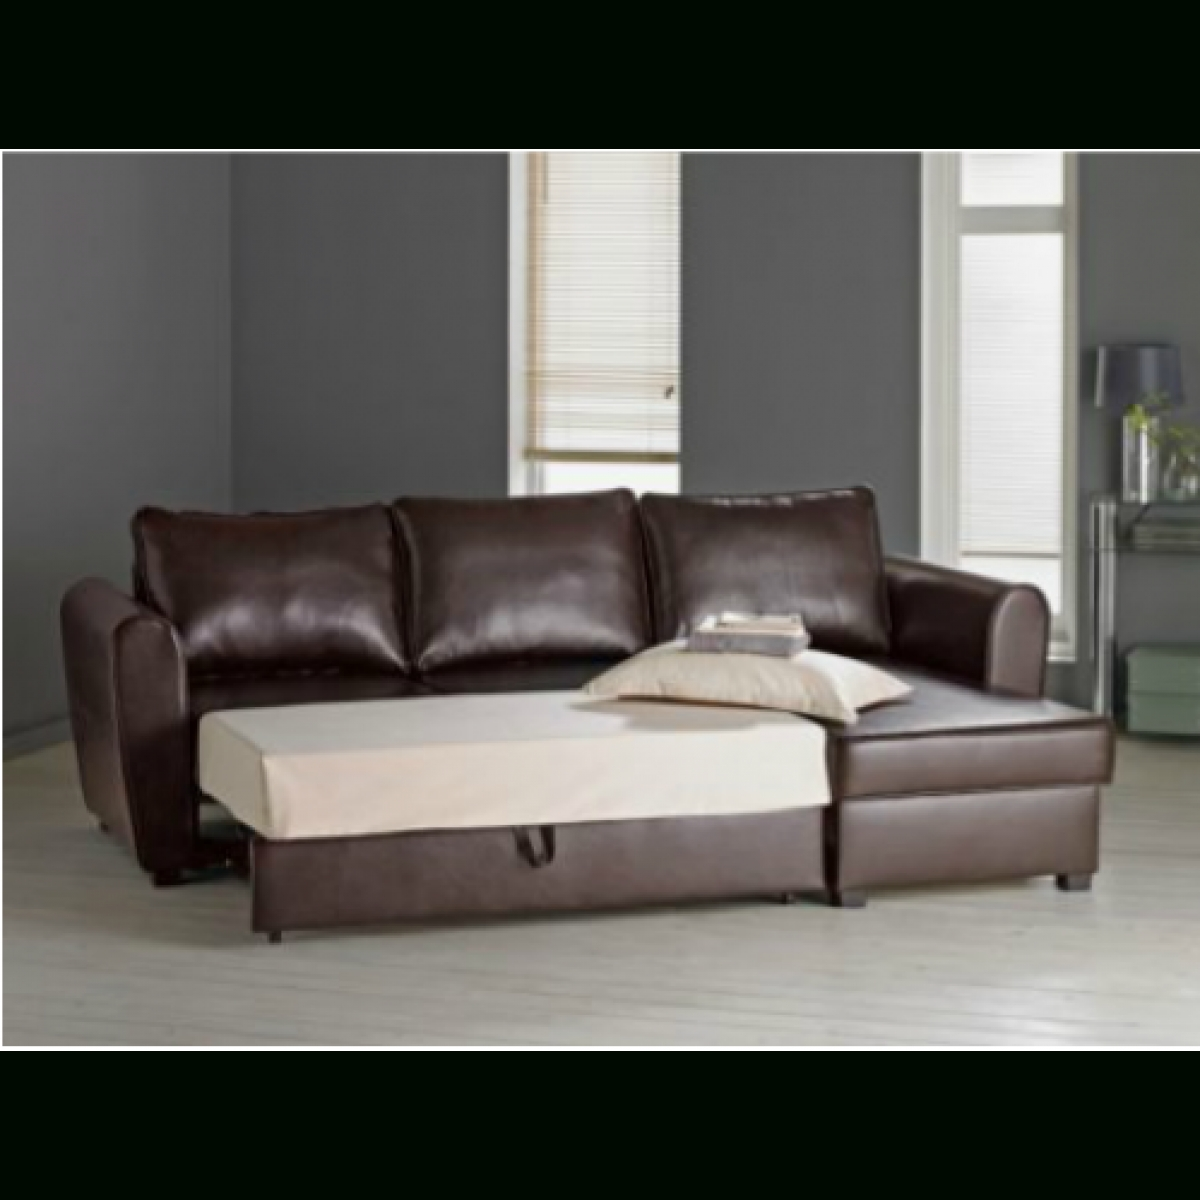 New Siena Fabric Corner Sofa Bed With Storage - Charcoal in Corner Sofa Beds